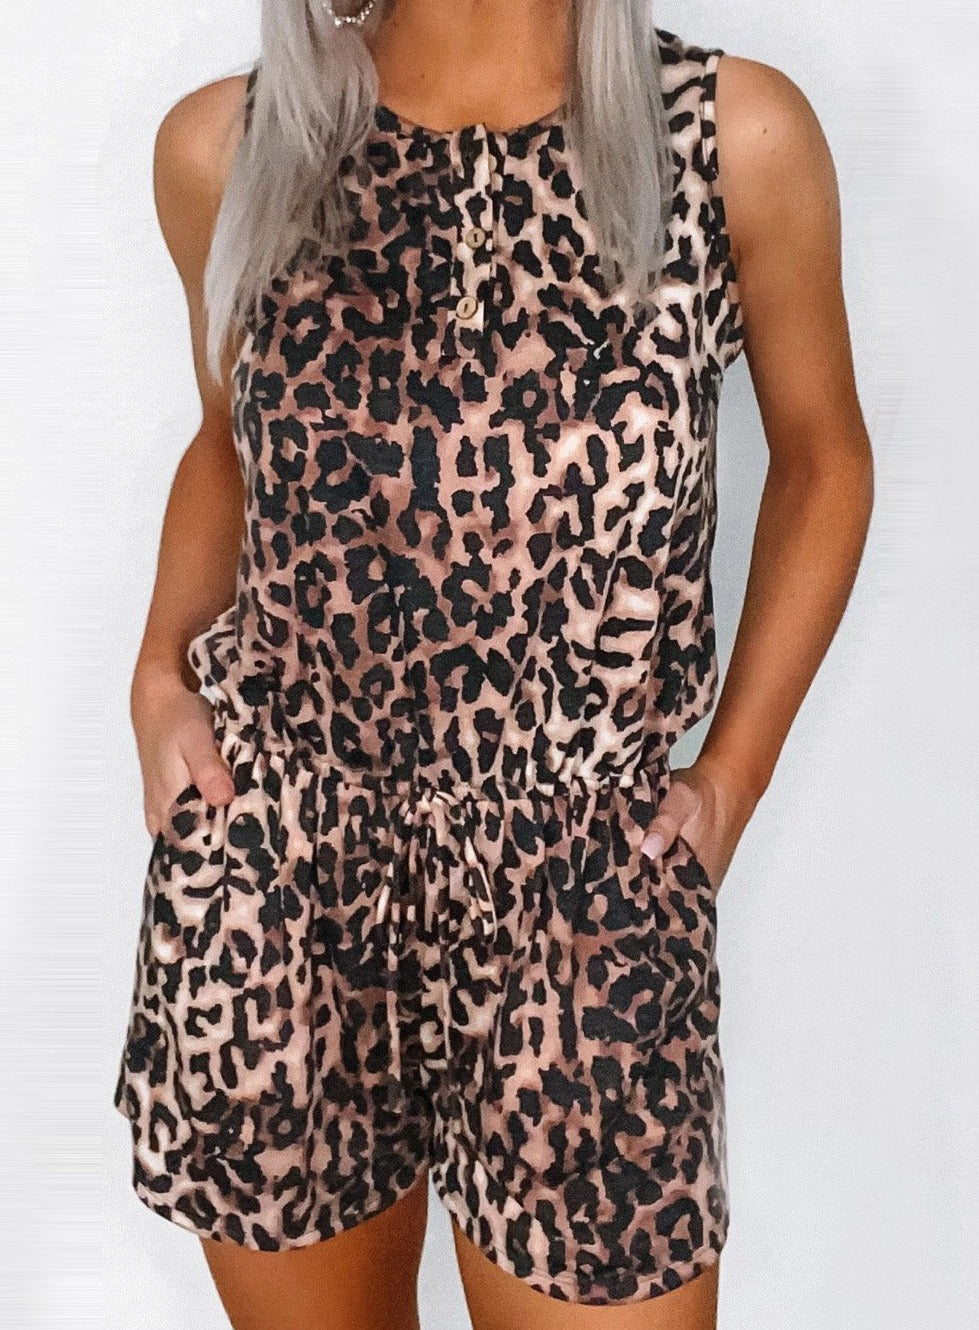 Leopard Romper with Pockets